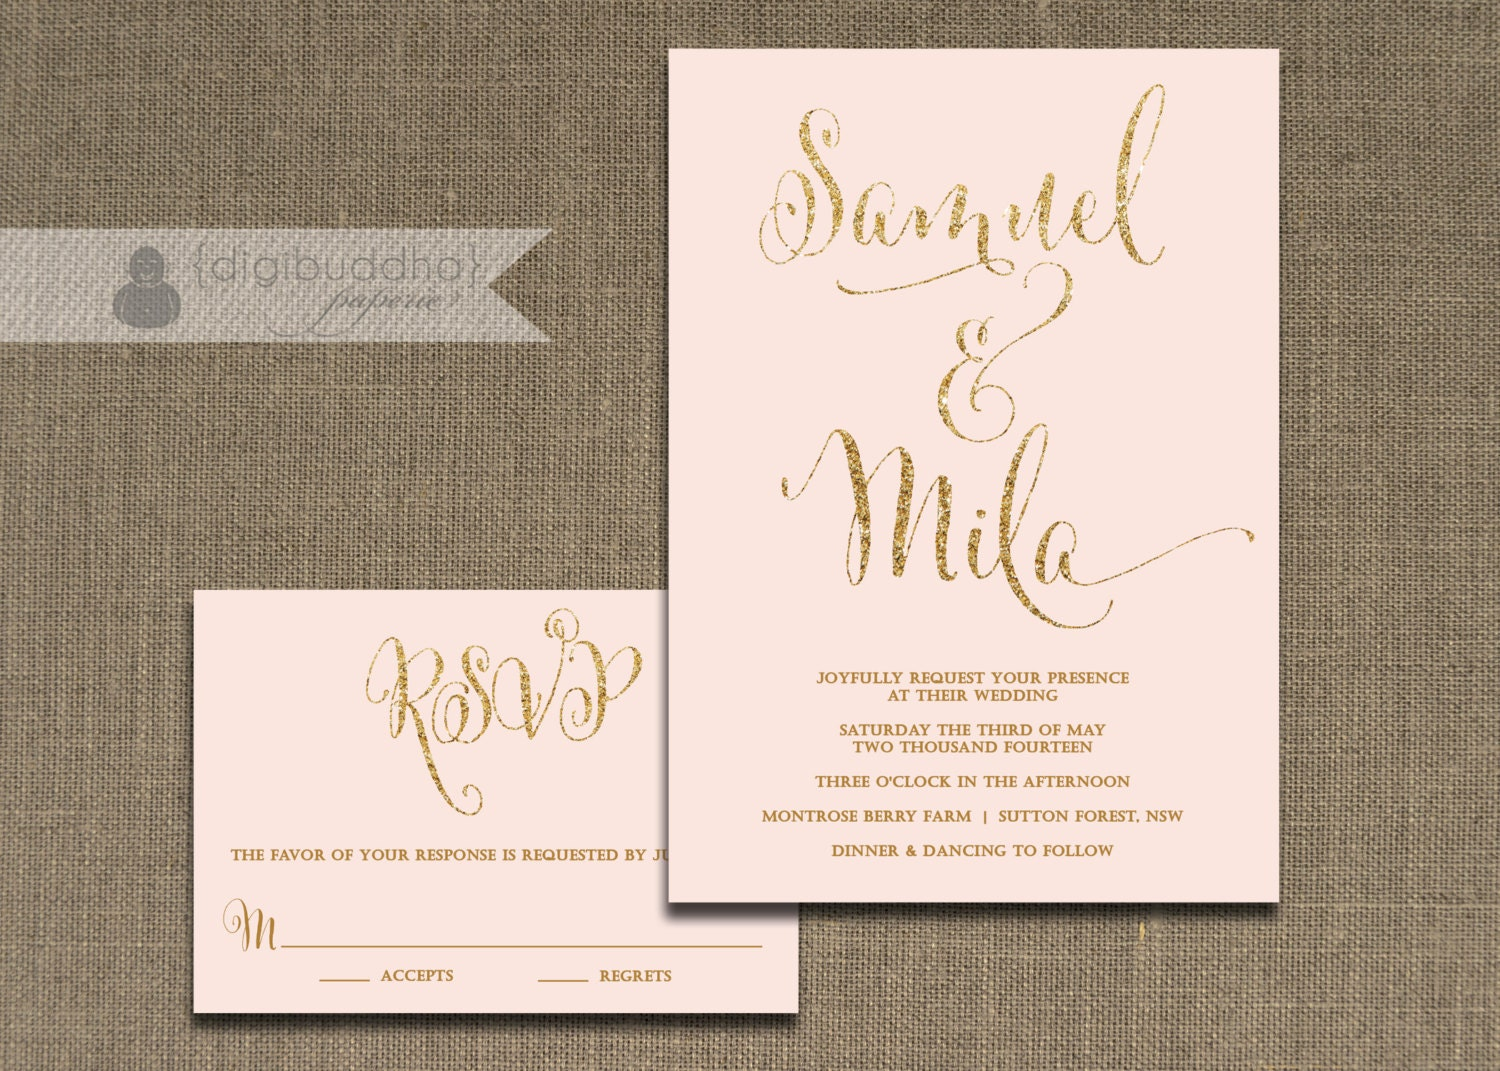 Golden Wedding Invitations Free: Blush Pink And Gold Wedding Invitation & RSVP 2 Piece Suite